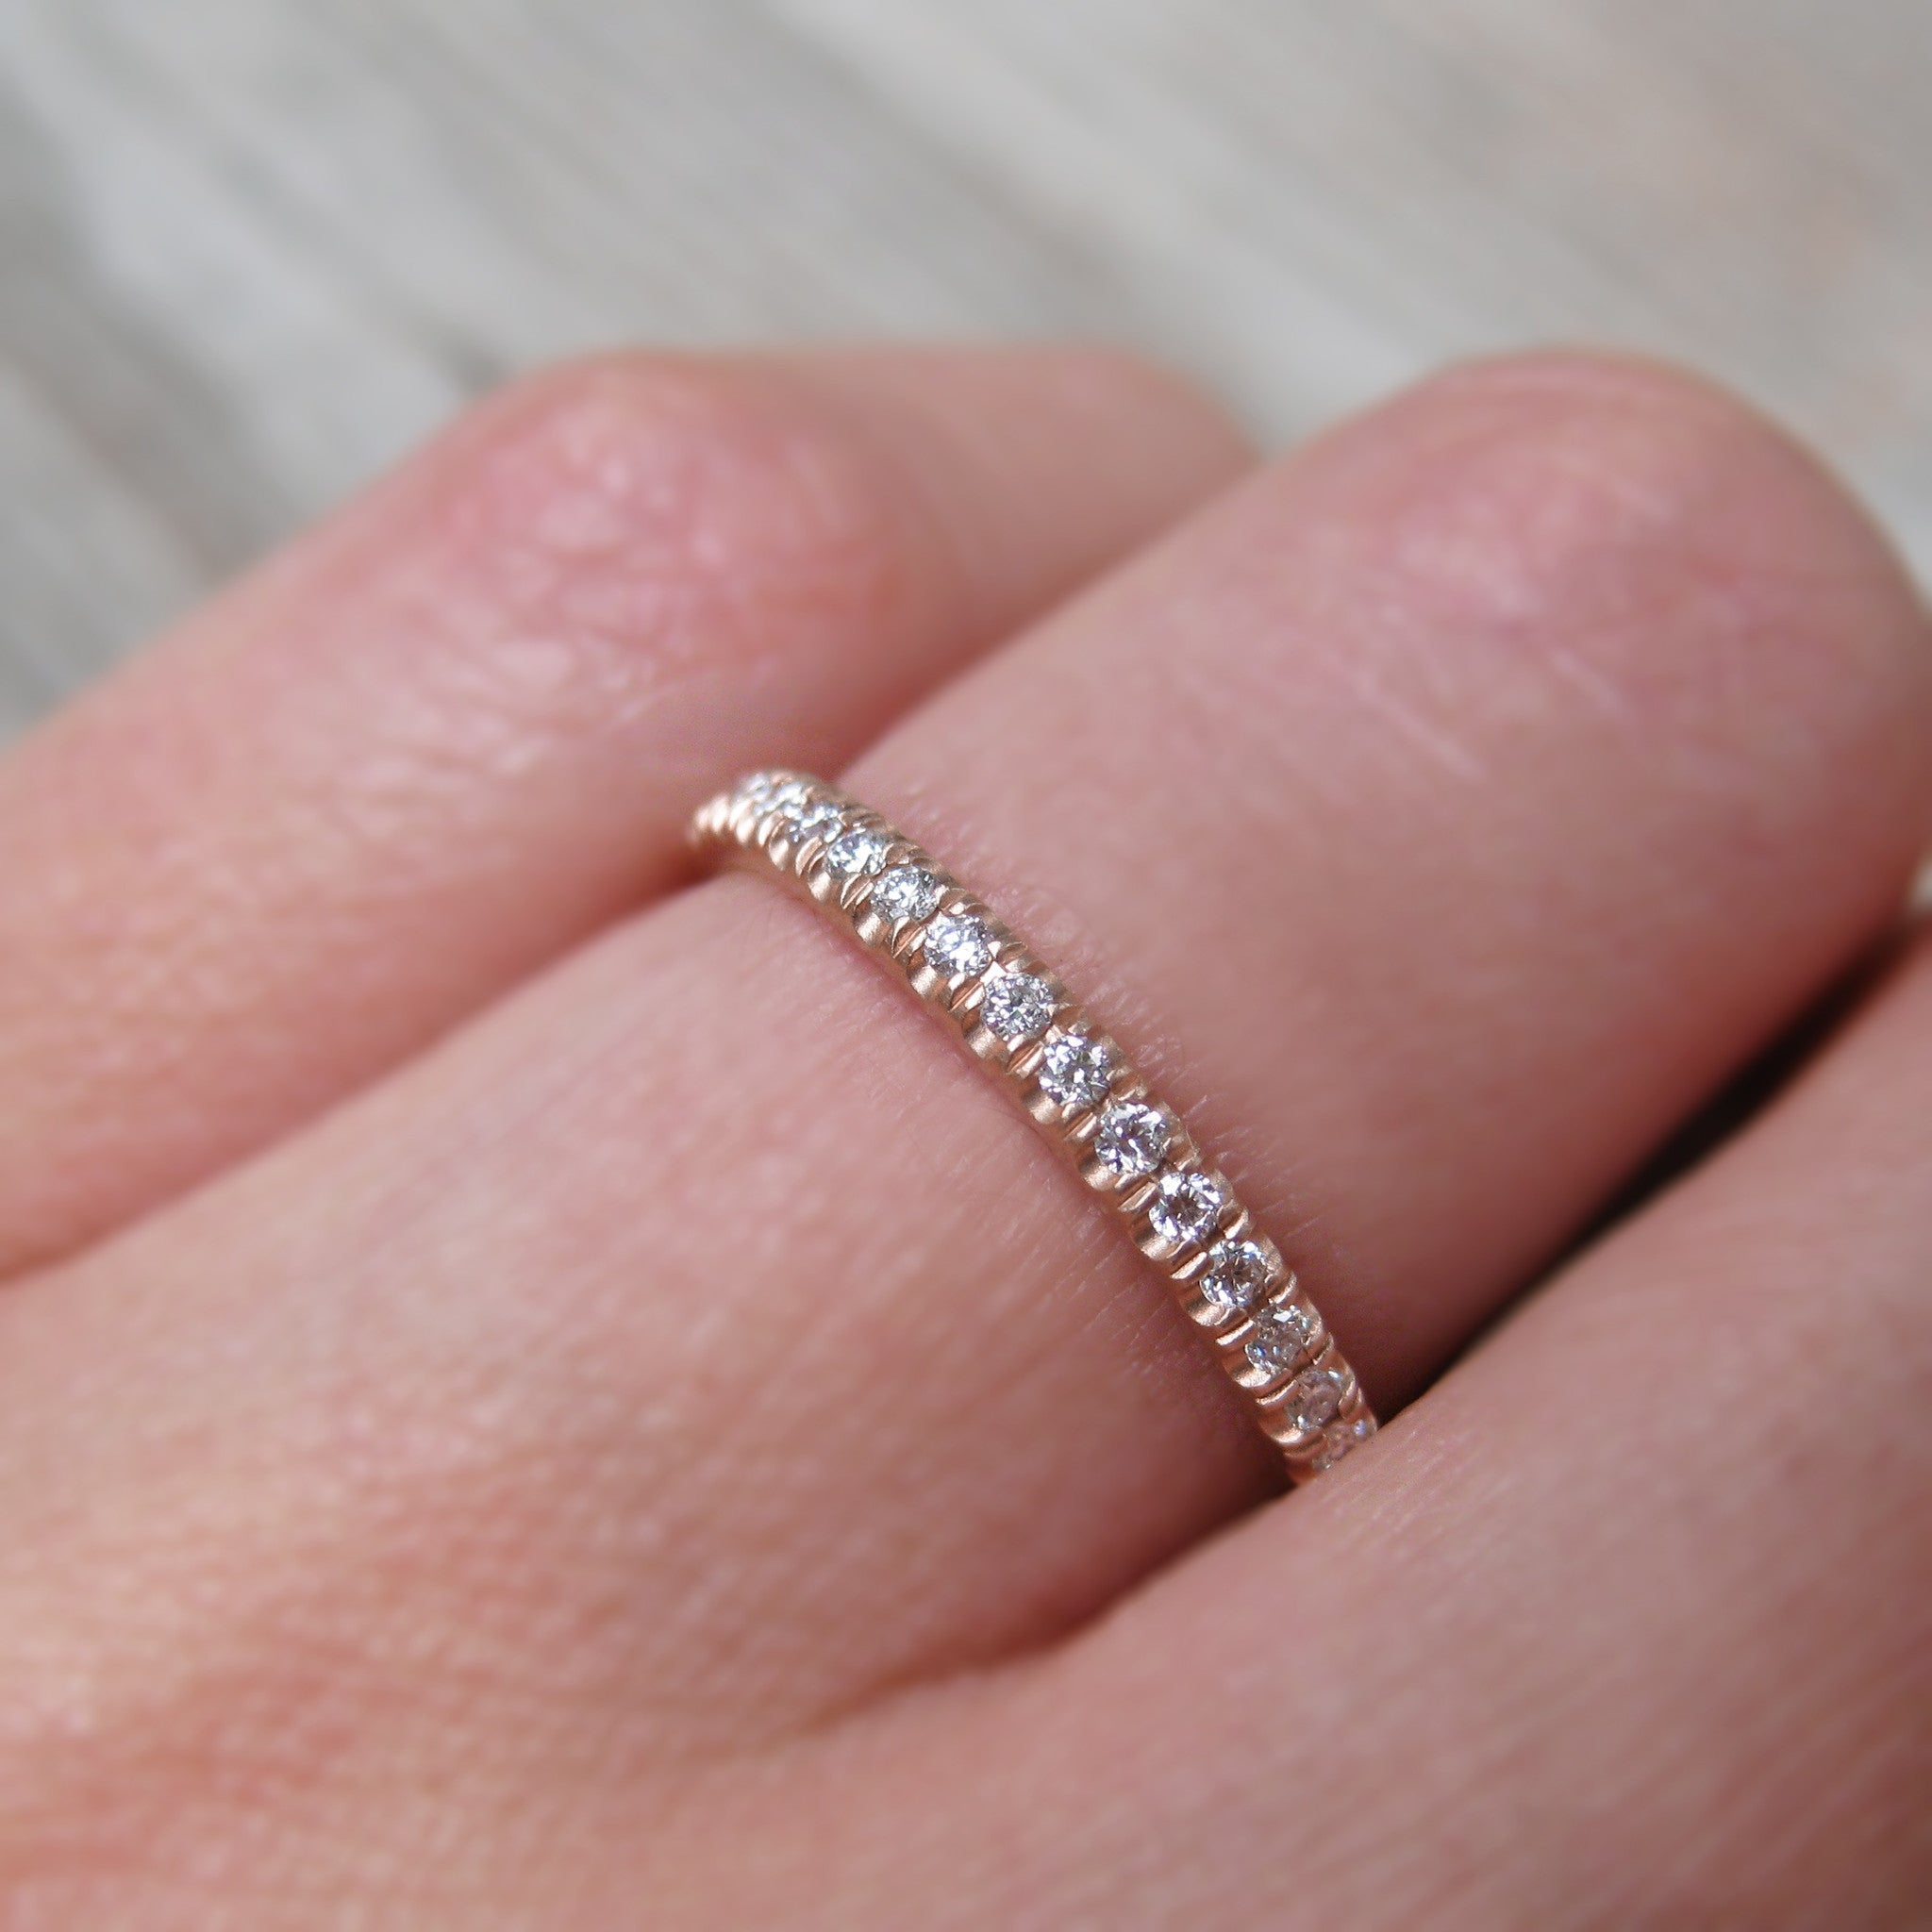 canadian kristin engagement ring twig diamonds eternity alone pav mod band diamond pave products wedding etern lillet bands